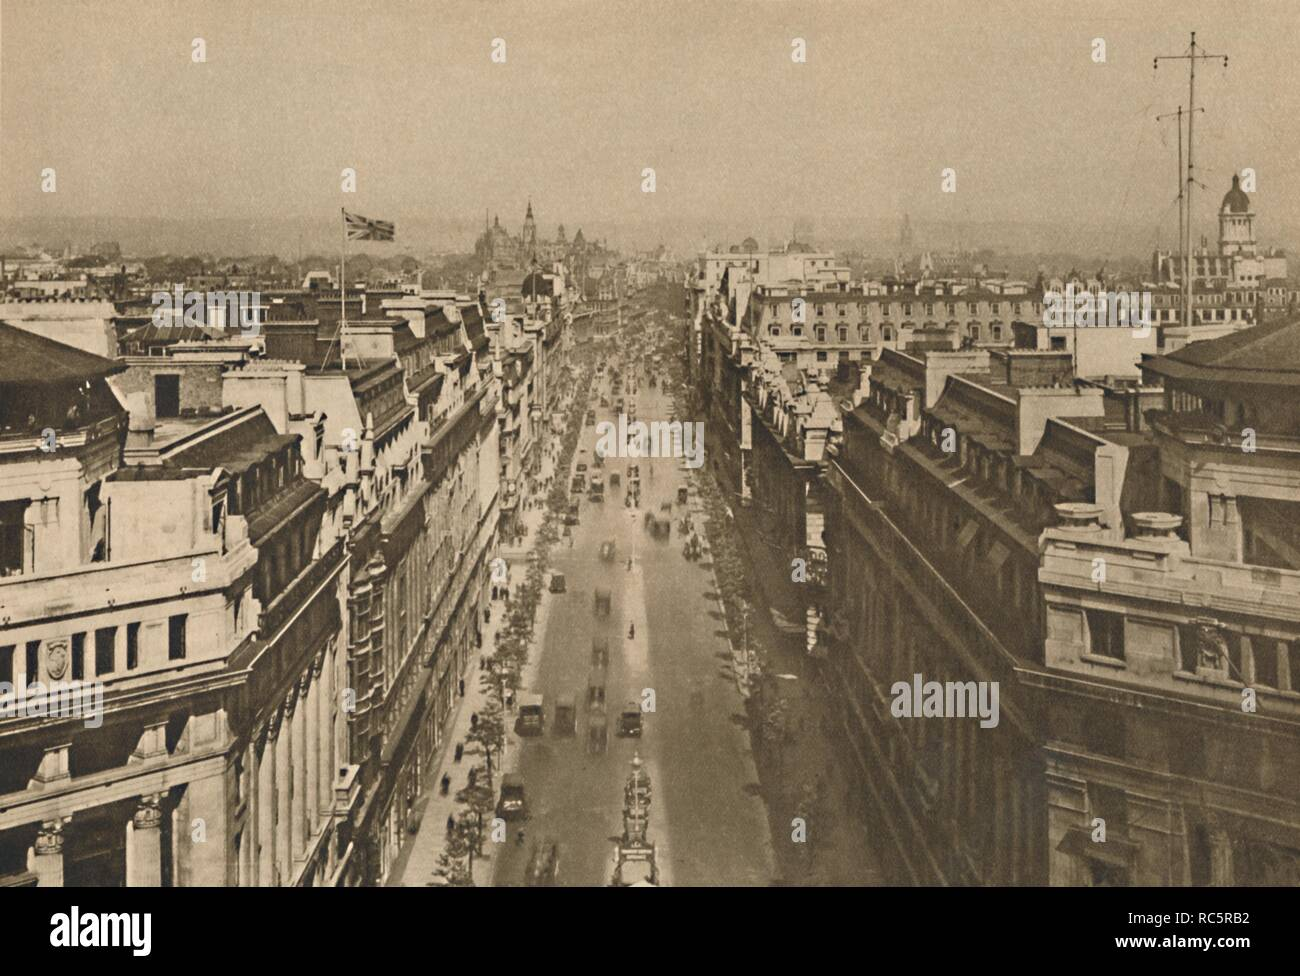 "'On The Roof of Bush House, Looking From Kingsway Towards The Northern Heights', c1935. View from the top of the BBC building at the southern end of Kingsway in central London. Bush House was used to broadcast BBC programmes between 1941 and 2012. To the left is Shell House, and opposite, with wireless telegraphy installation on the roof, is Adastral House, headquarters of the Air Ministry. In the distance is St Pancras Station. From ""Wonderful London, Volume 2"", edited by Arthur St John Adcock. [The Fleetway House, London, c1935] Stock Photo"